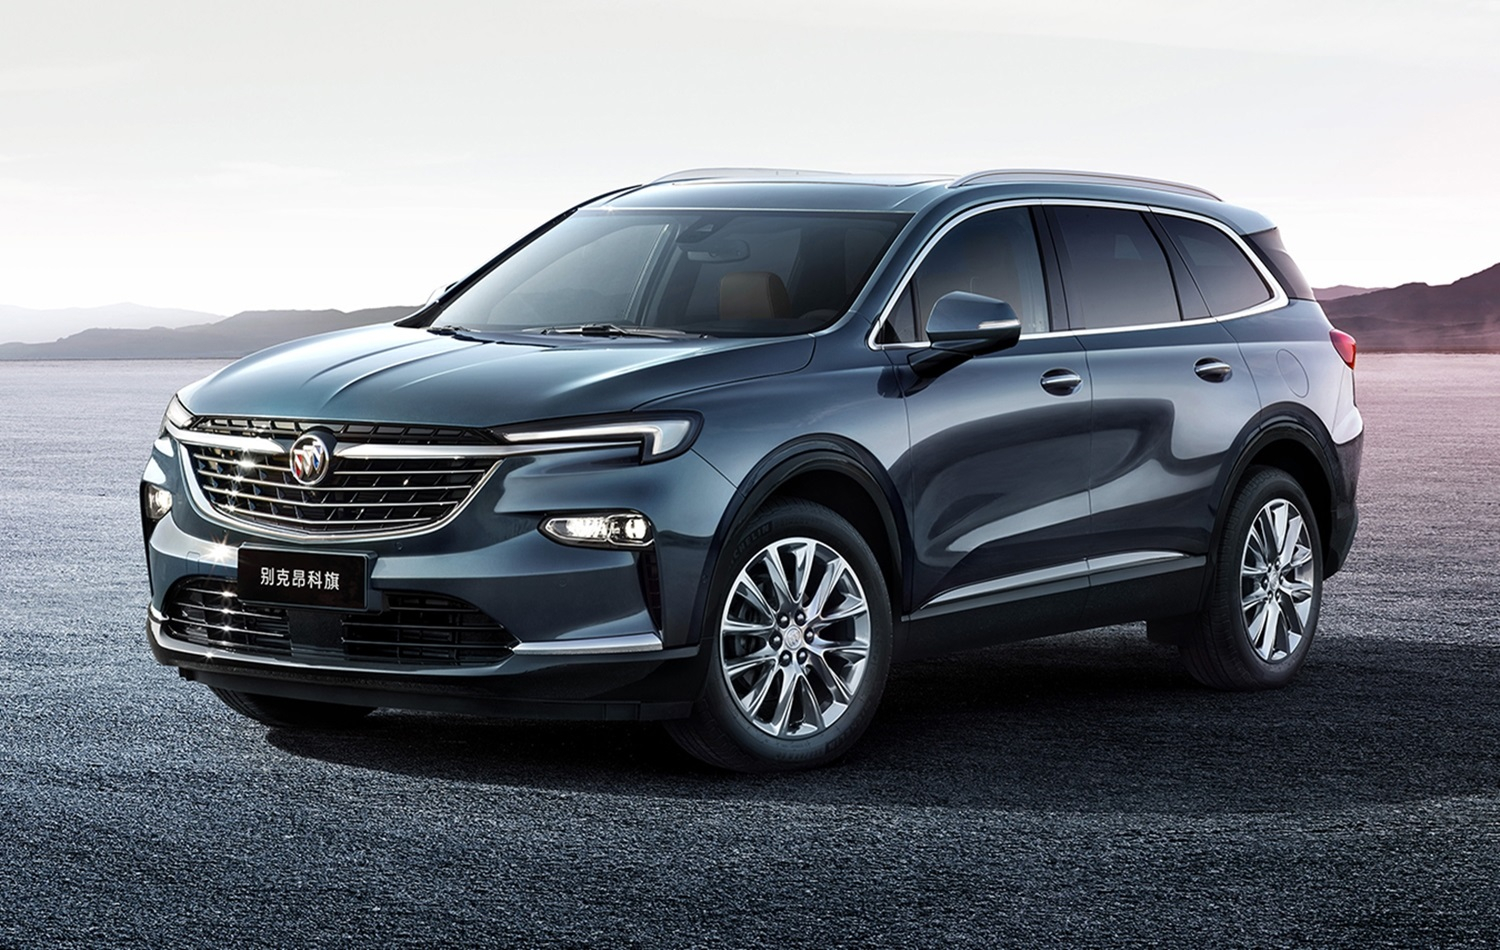 This Is The All-New Buick Enclave Crossover For China | Gm Build Your Own 2022 Buick Enclave